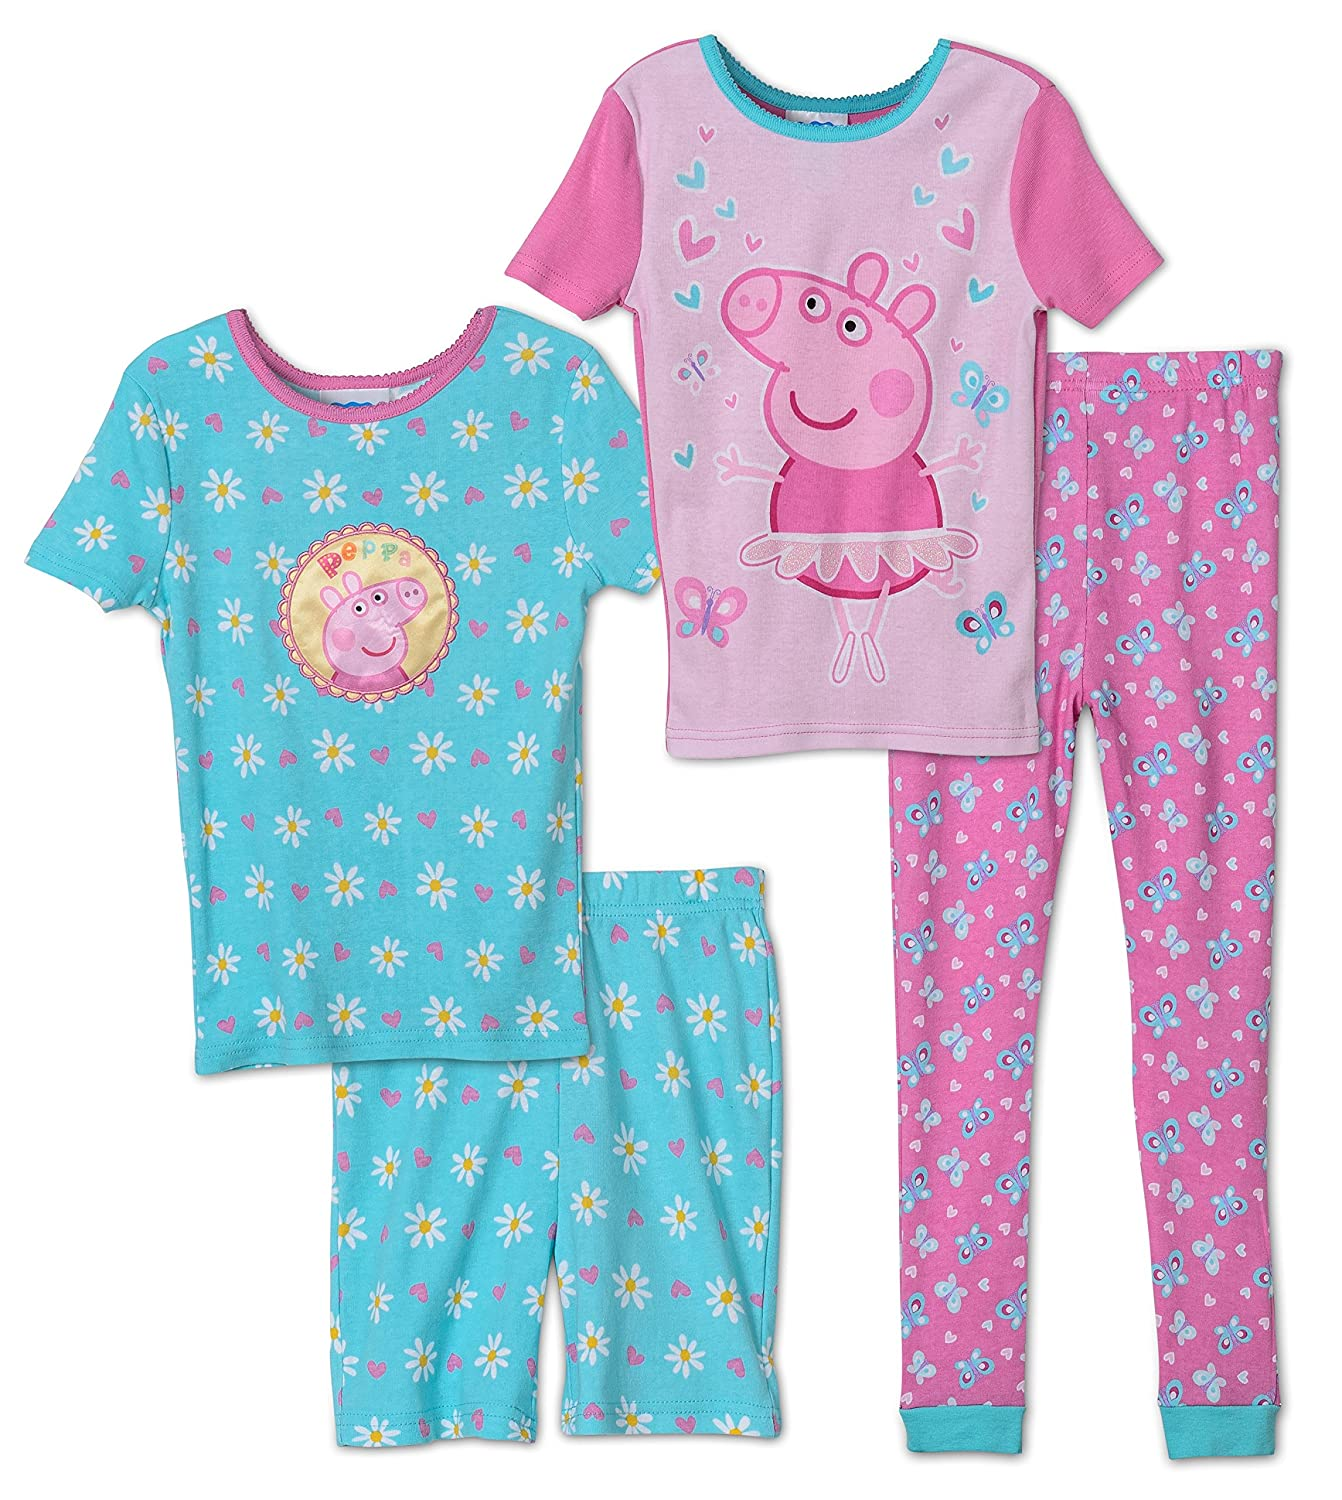 Peppa Pig Girls' 4 Piece Cotton Set K182277PP